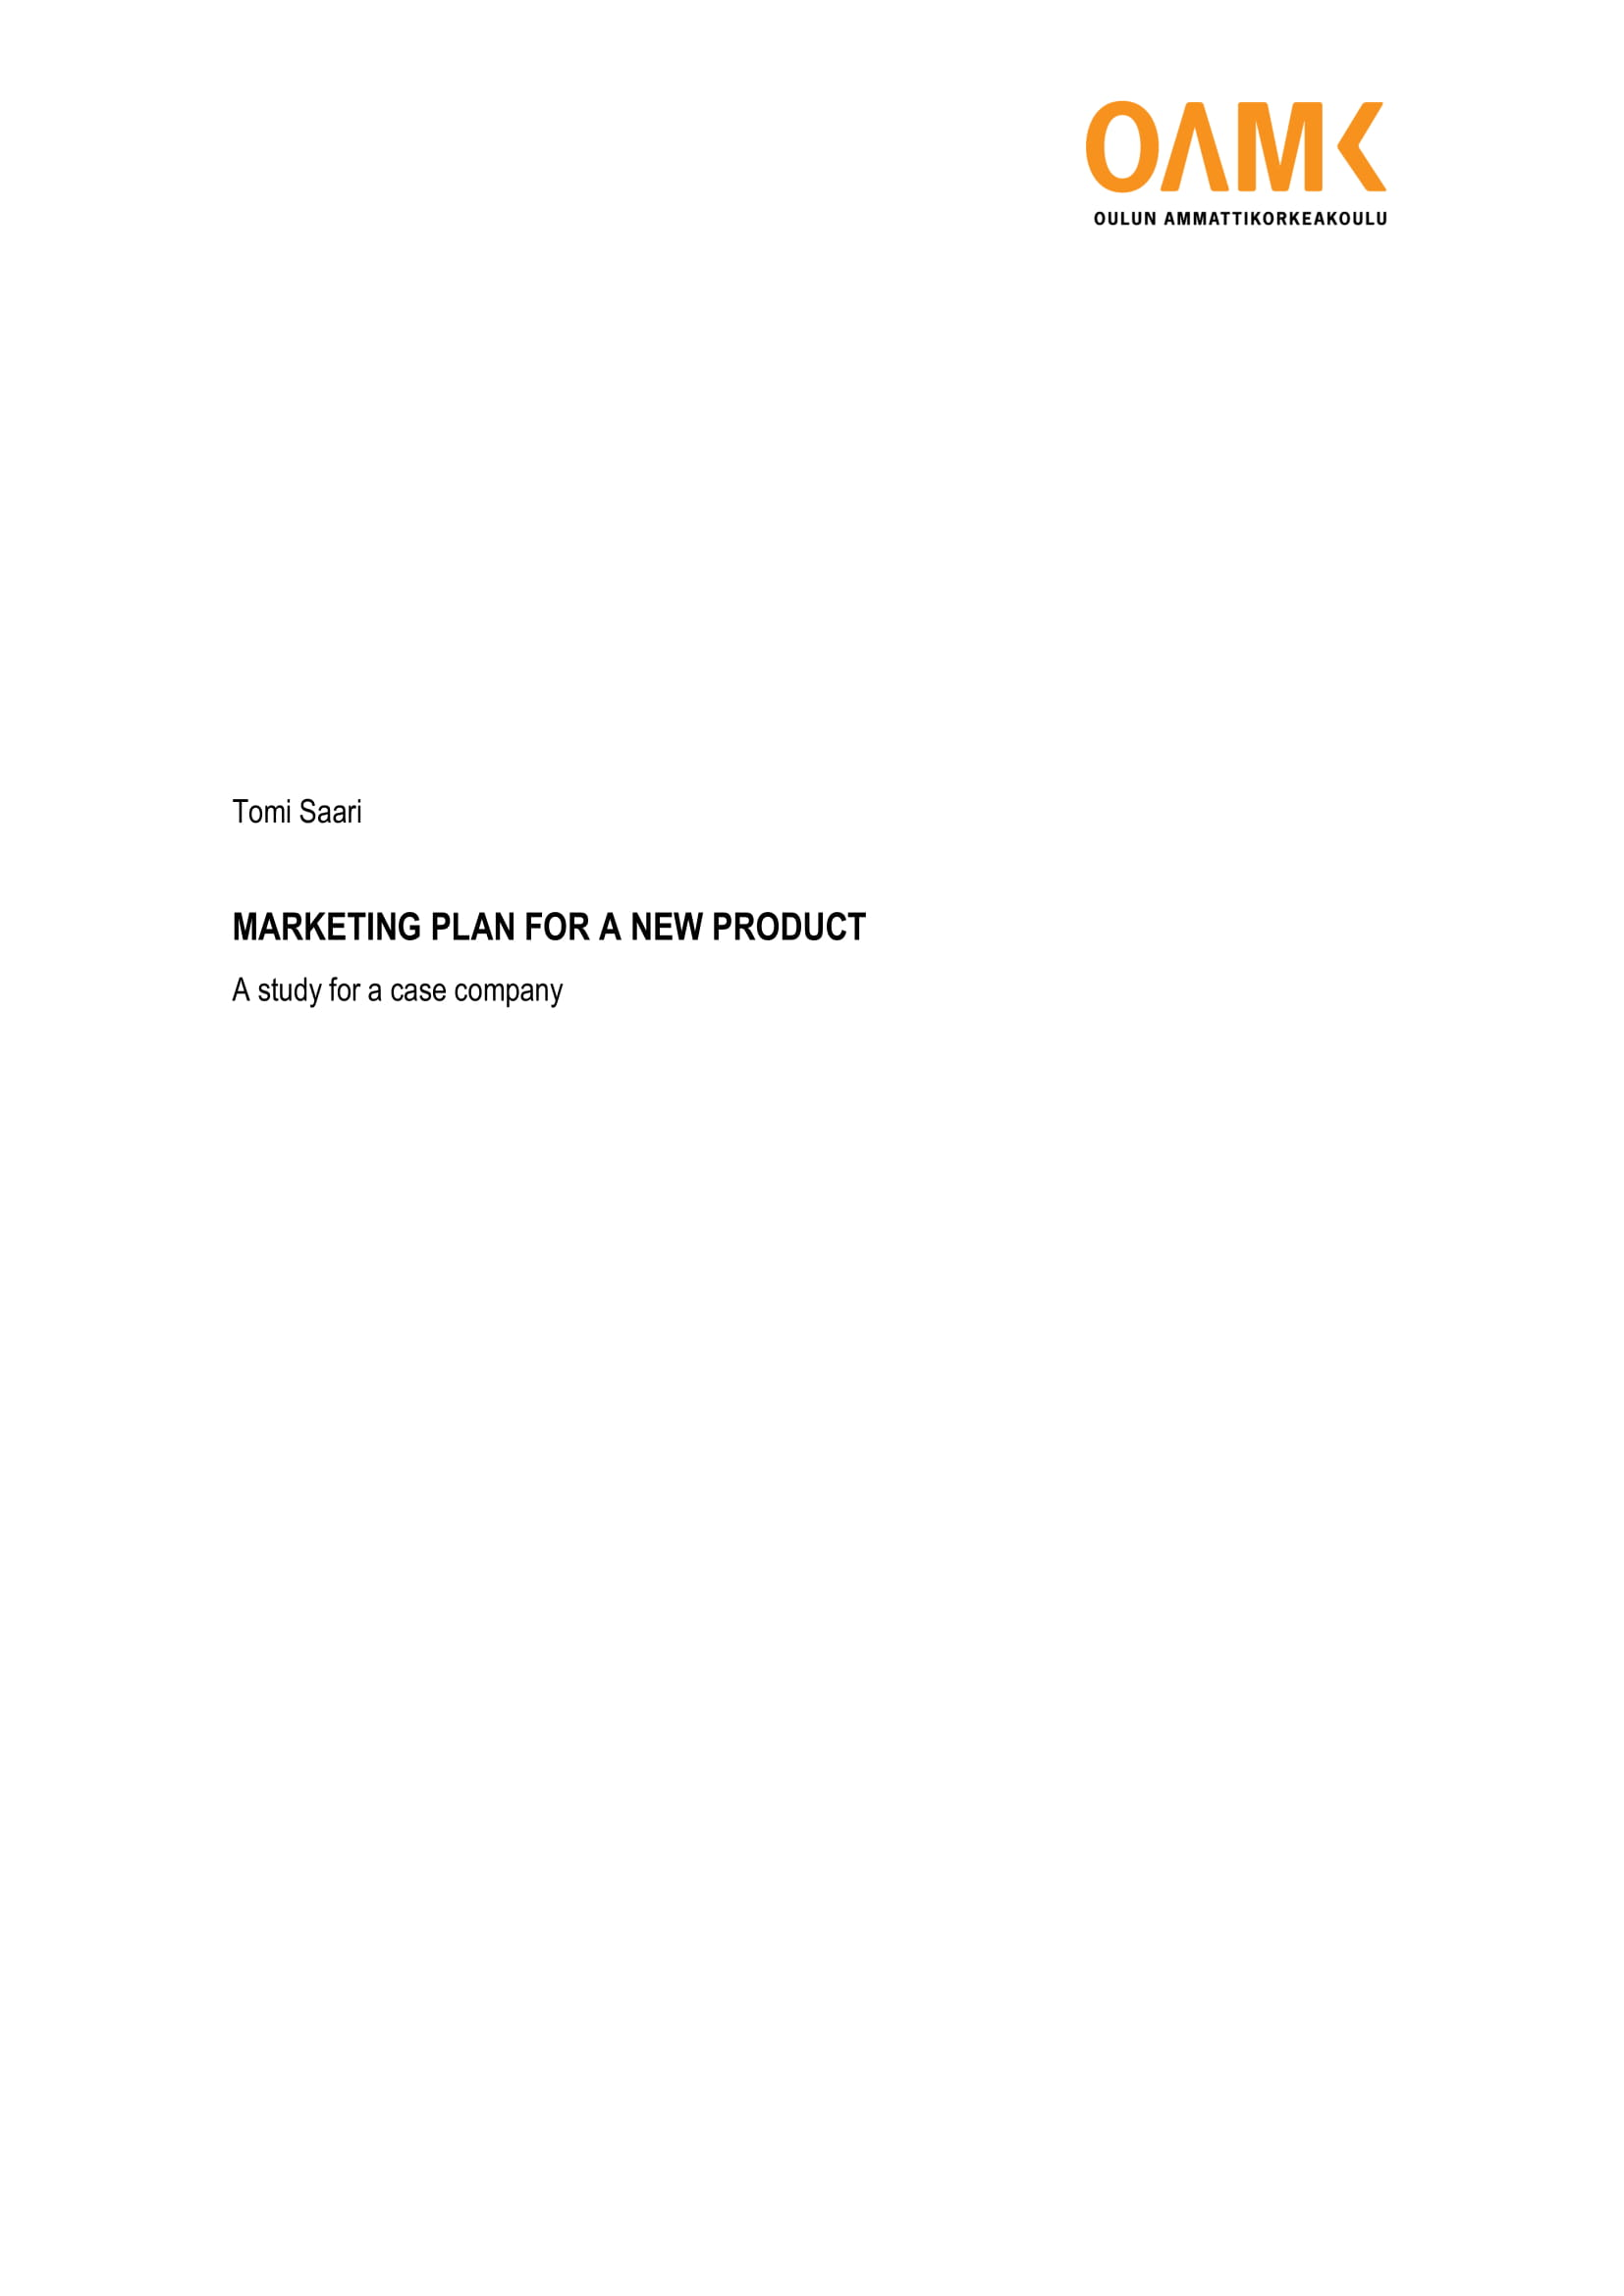 launching project marketing plan for a new product 01